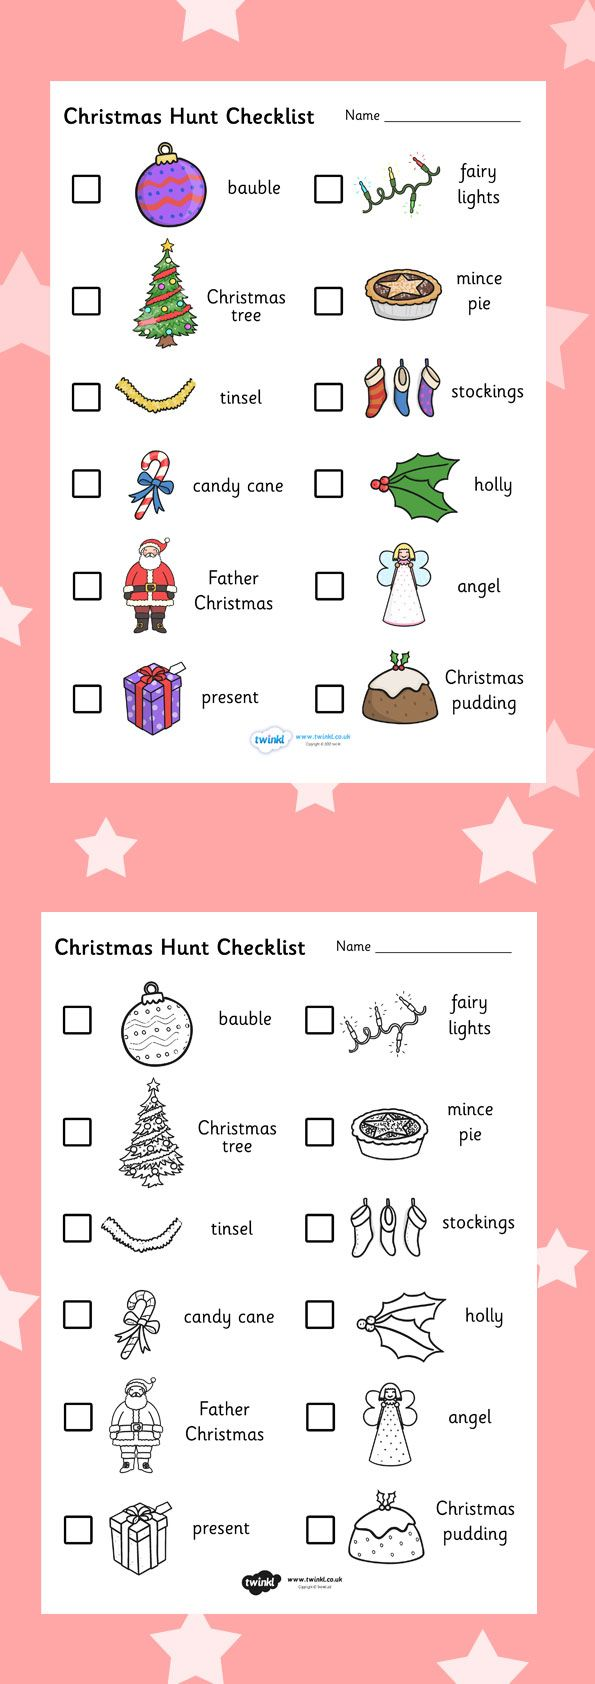 Christmas colouring in sheets twinkl - Twinkl Resources Christmas Hunt Checklist Printable Resources For Primary Eyfs